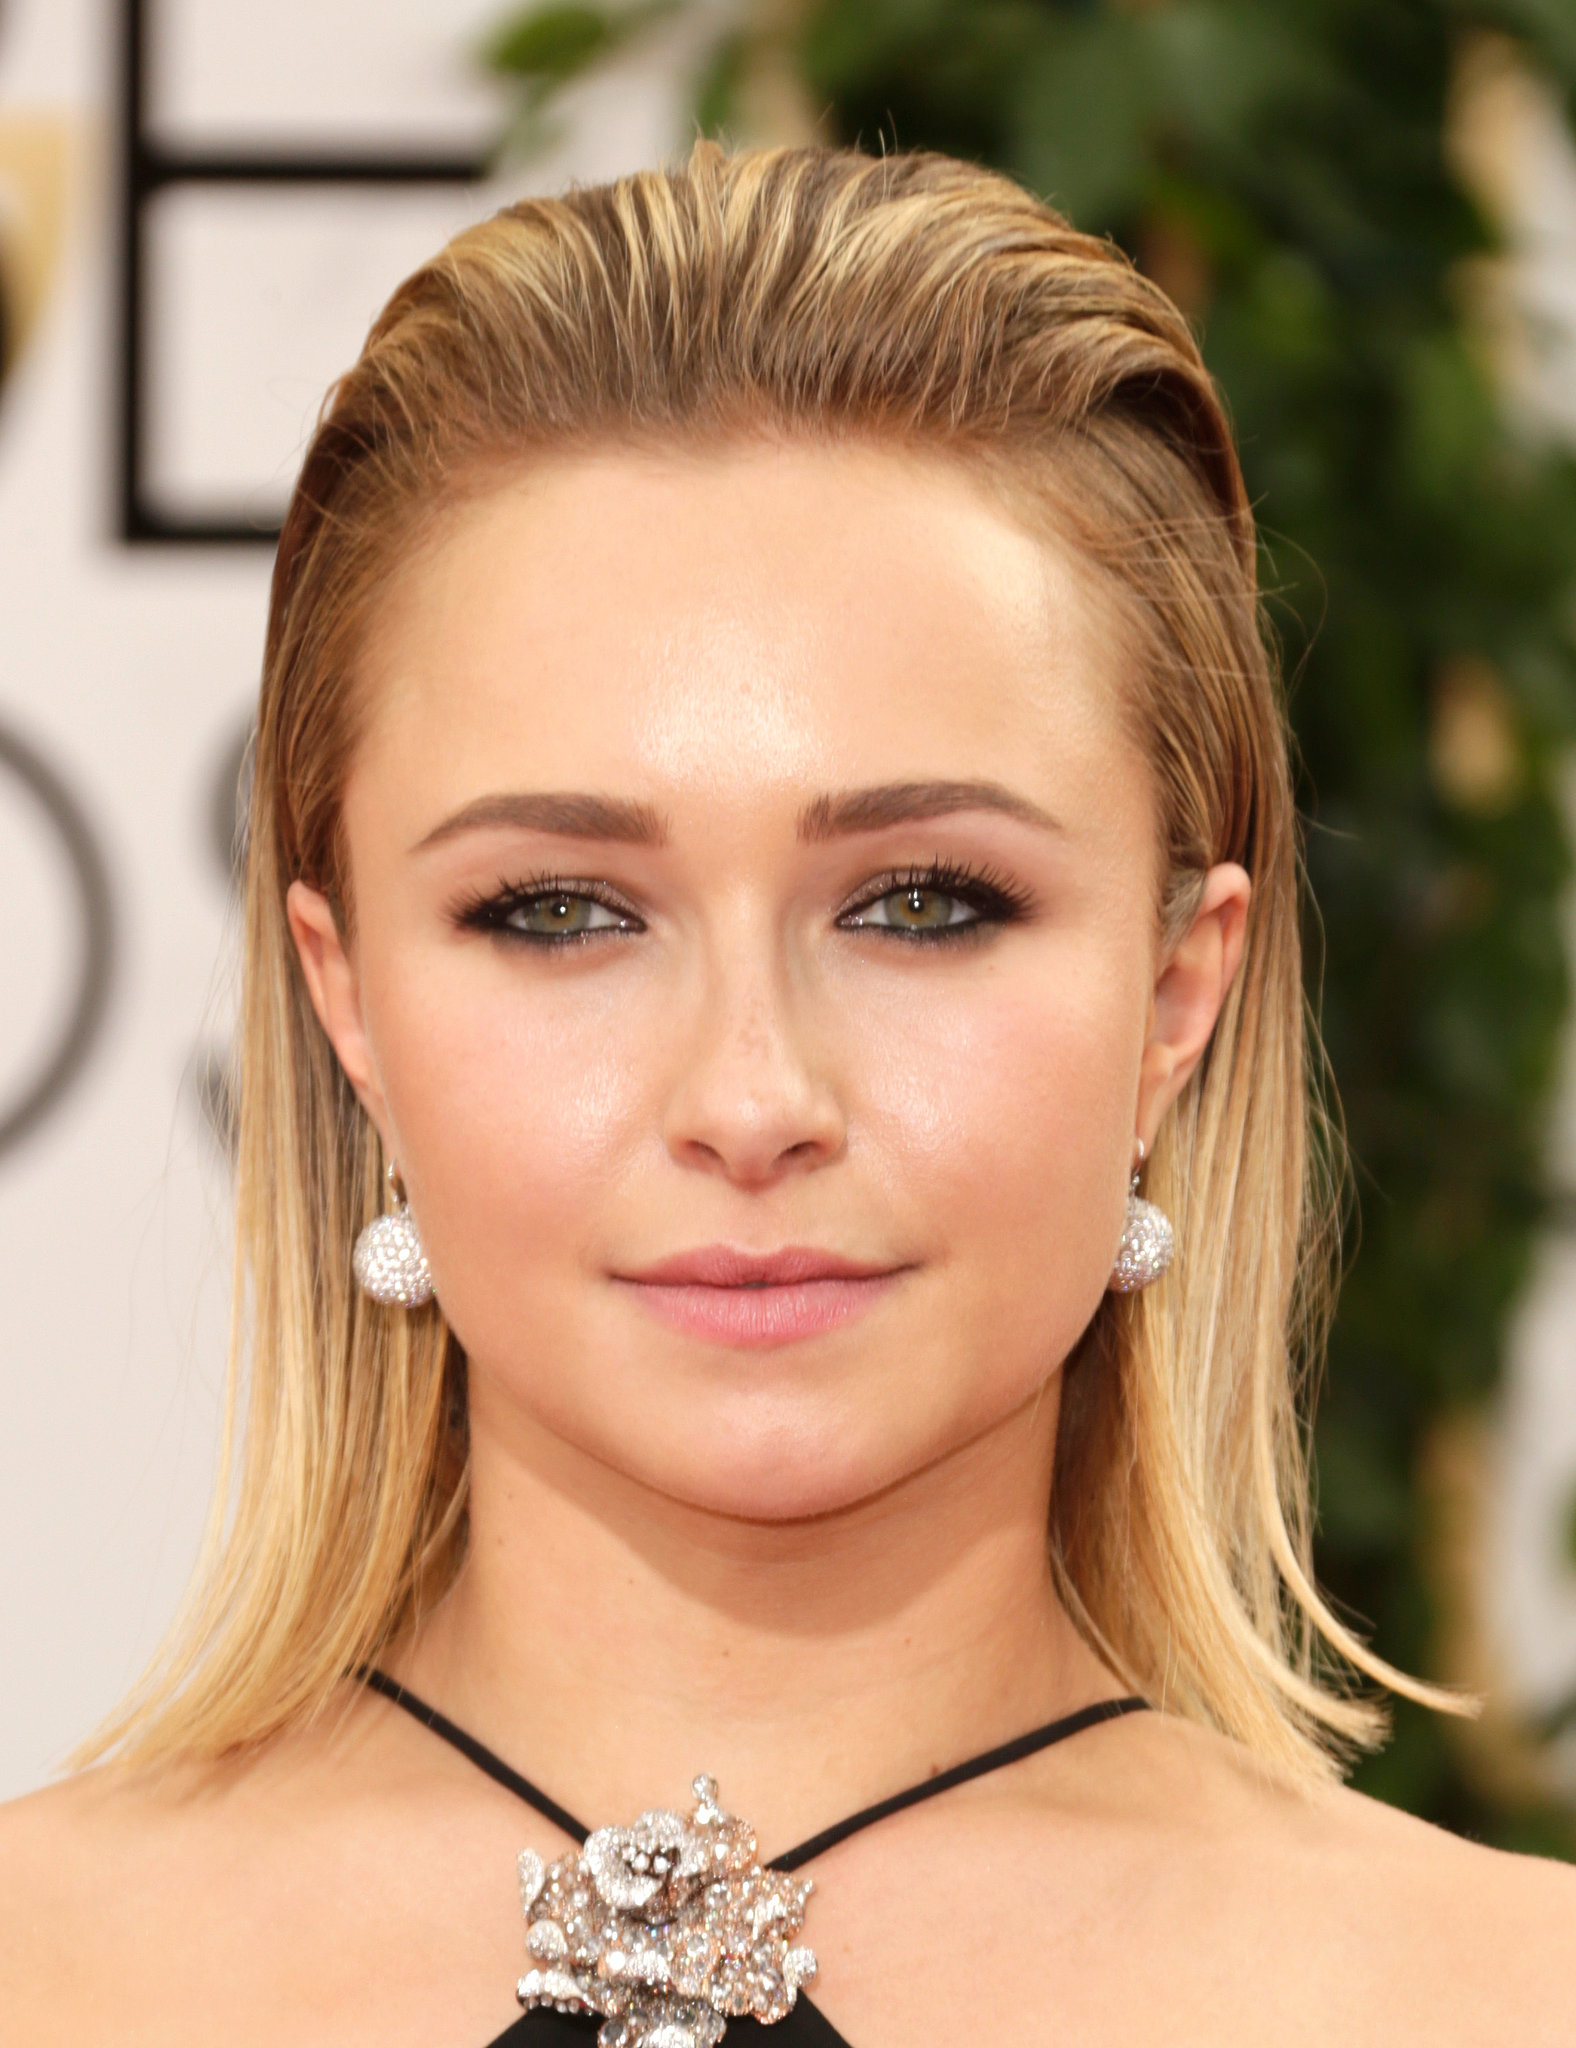 Hayden Panettiere's halter neckline and slicked-back hair were the perfect opportunity to reveal her own beautiful drop earrings.